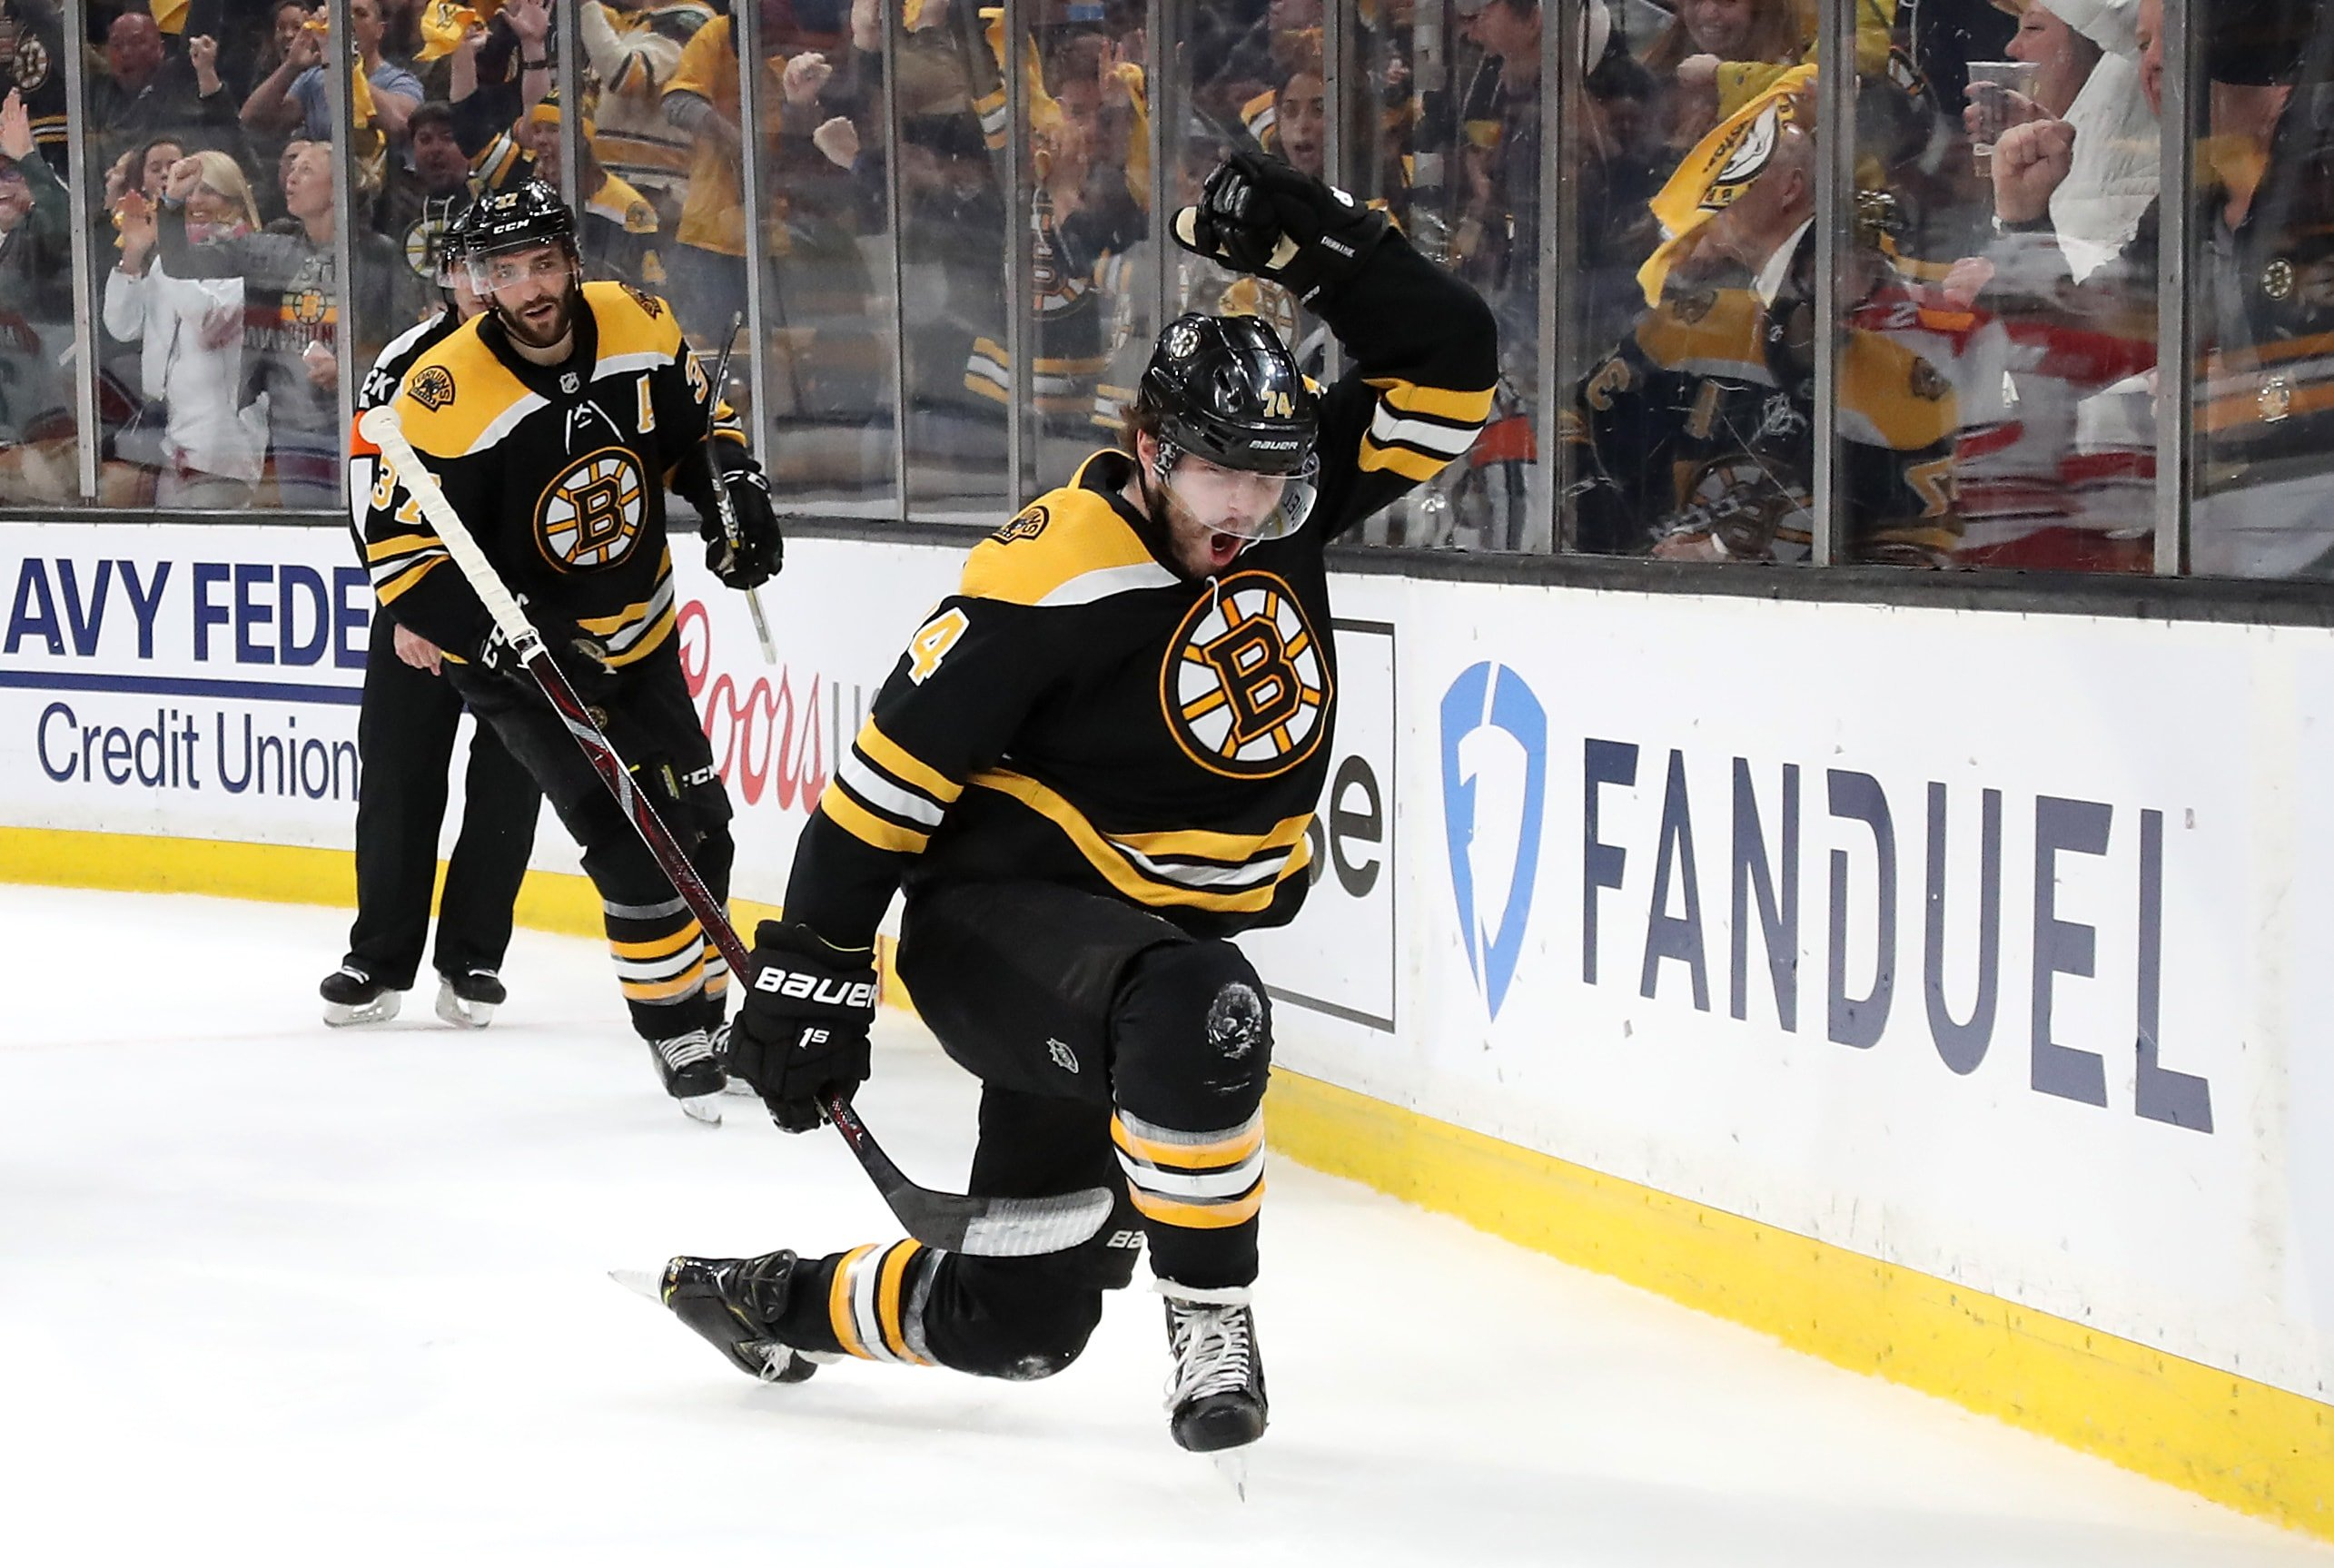 Jake DeBrusk of the Boston Bruins celebrates scoring a first period goal against the Carolina Hurricanes in Game 2 of the Eastern Conference Final during the 2019 NHL Stanley Cup Playoffs at TD Garden on May 12, 2019 in Boston, Massachusetts. (Photo by Bruce Bennett/Getty Images)